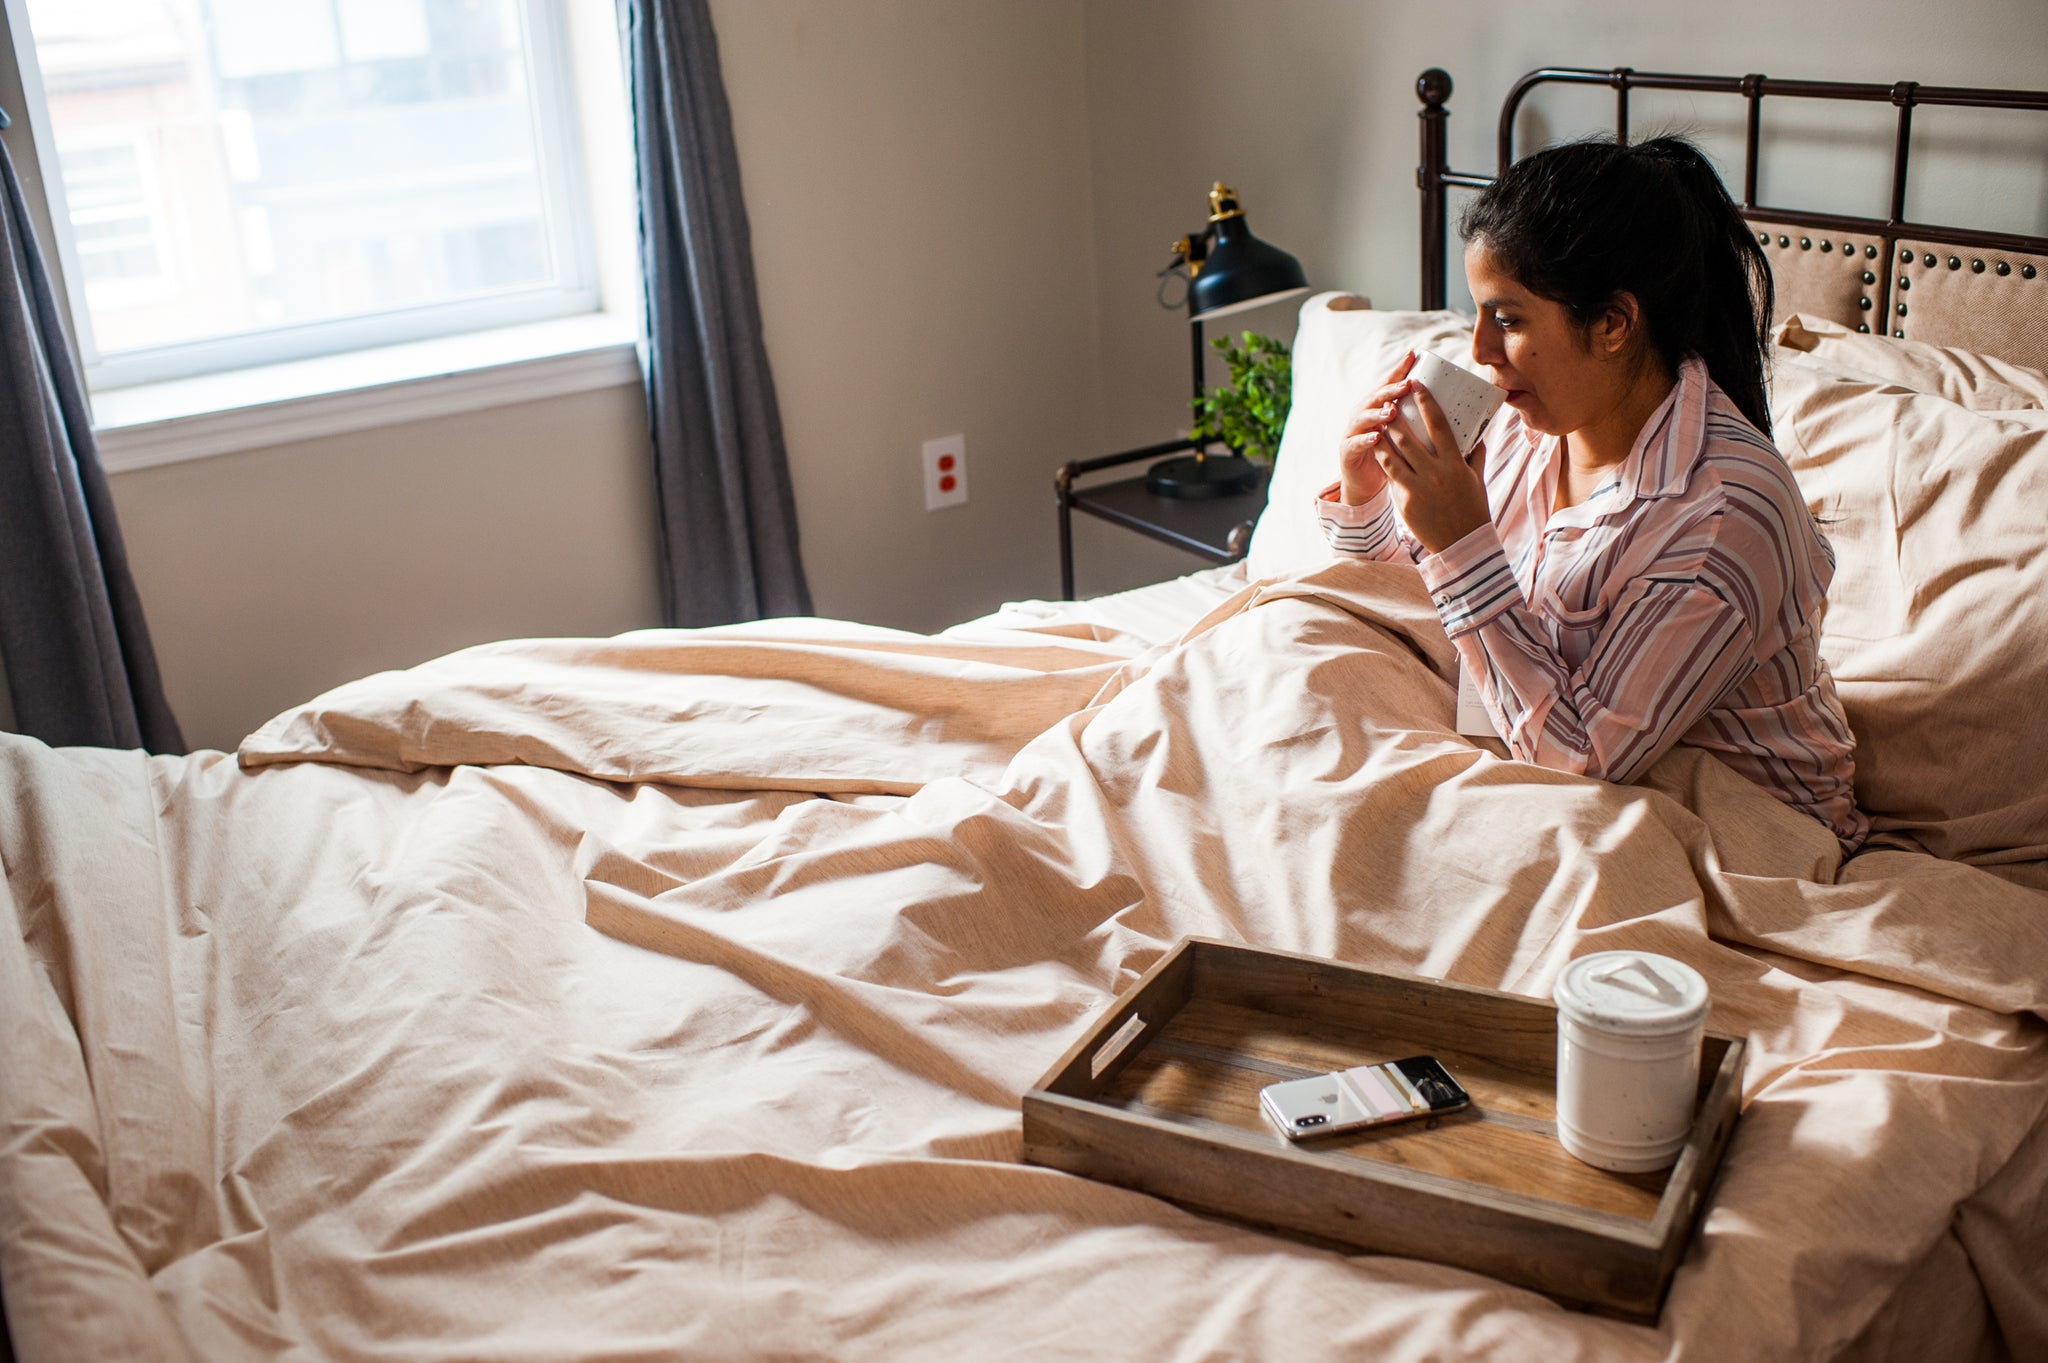 Woman sitting in bed made with Natural organic cotton sheets drinking a hot beverage.